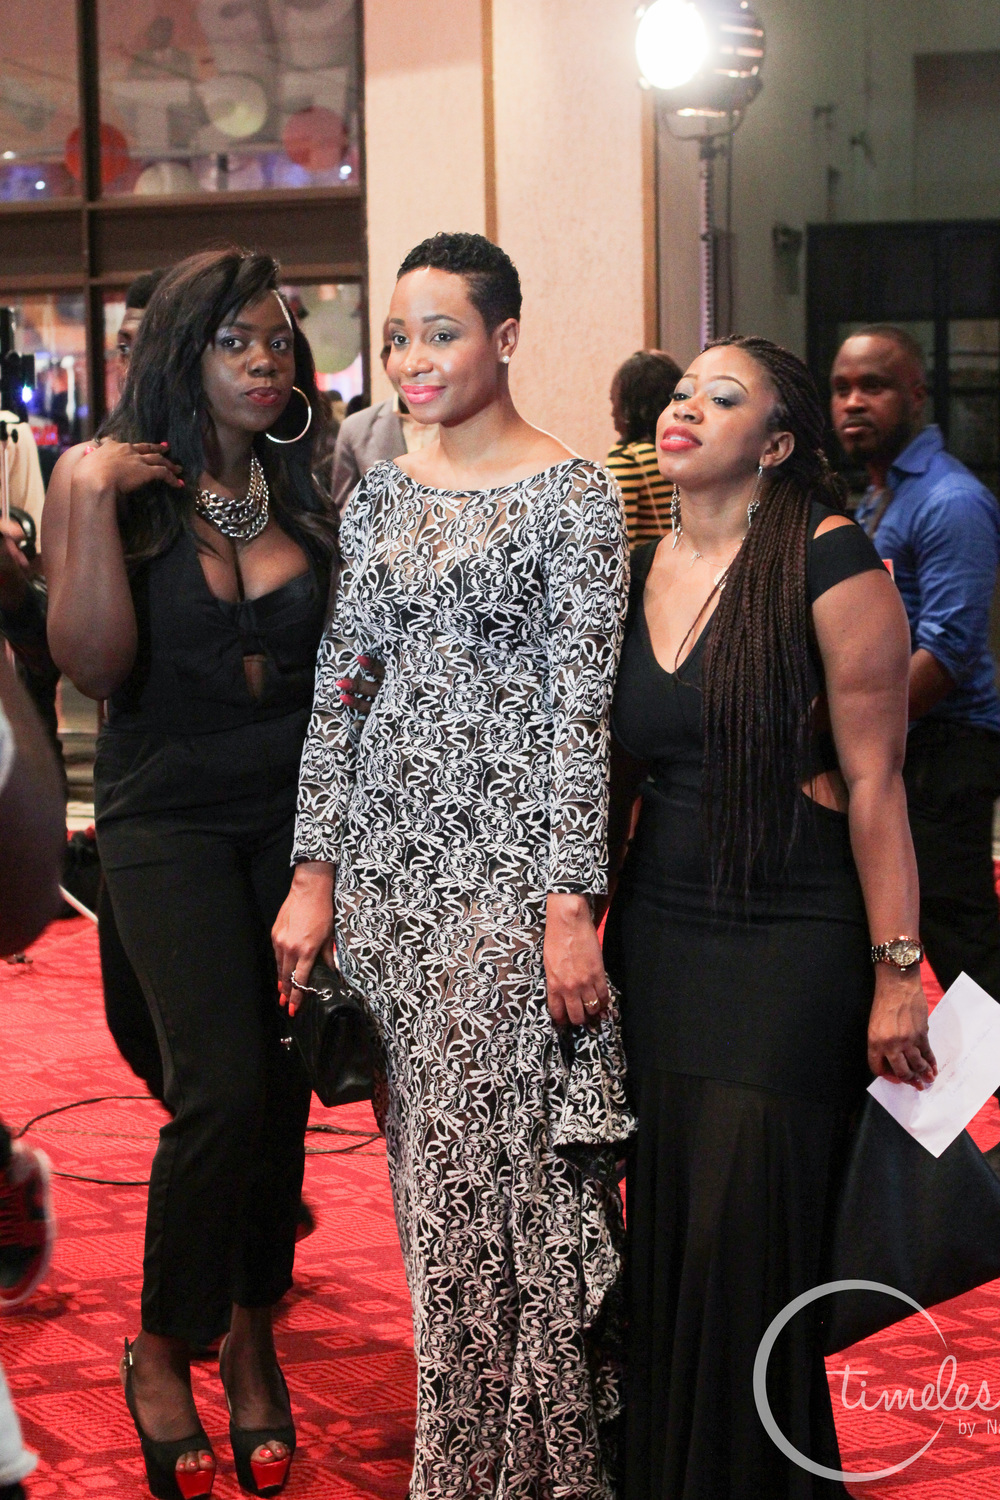 Pokello Nare with fans.